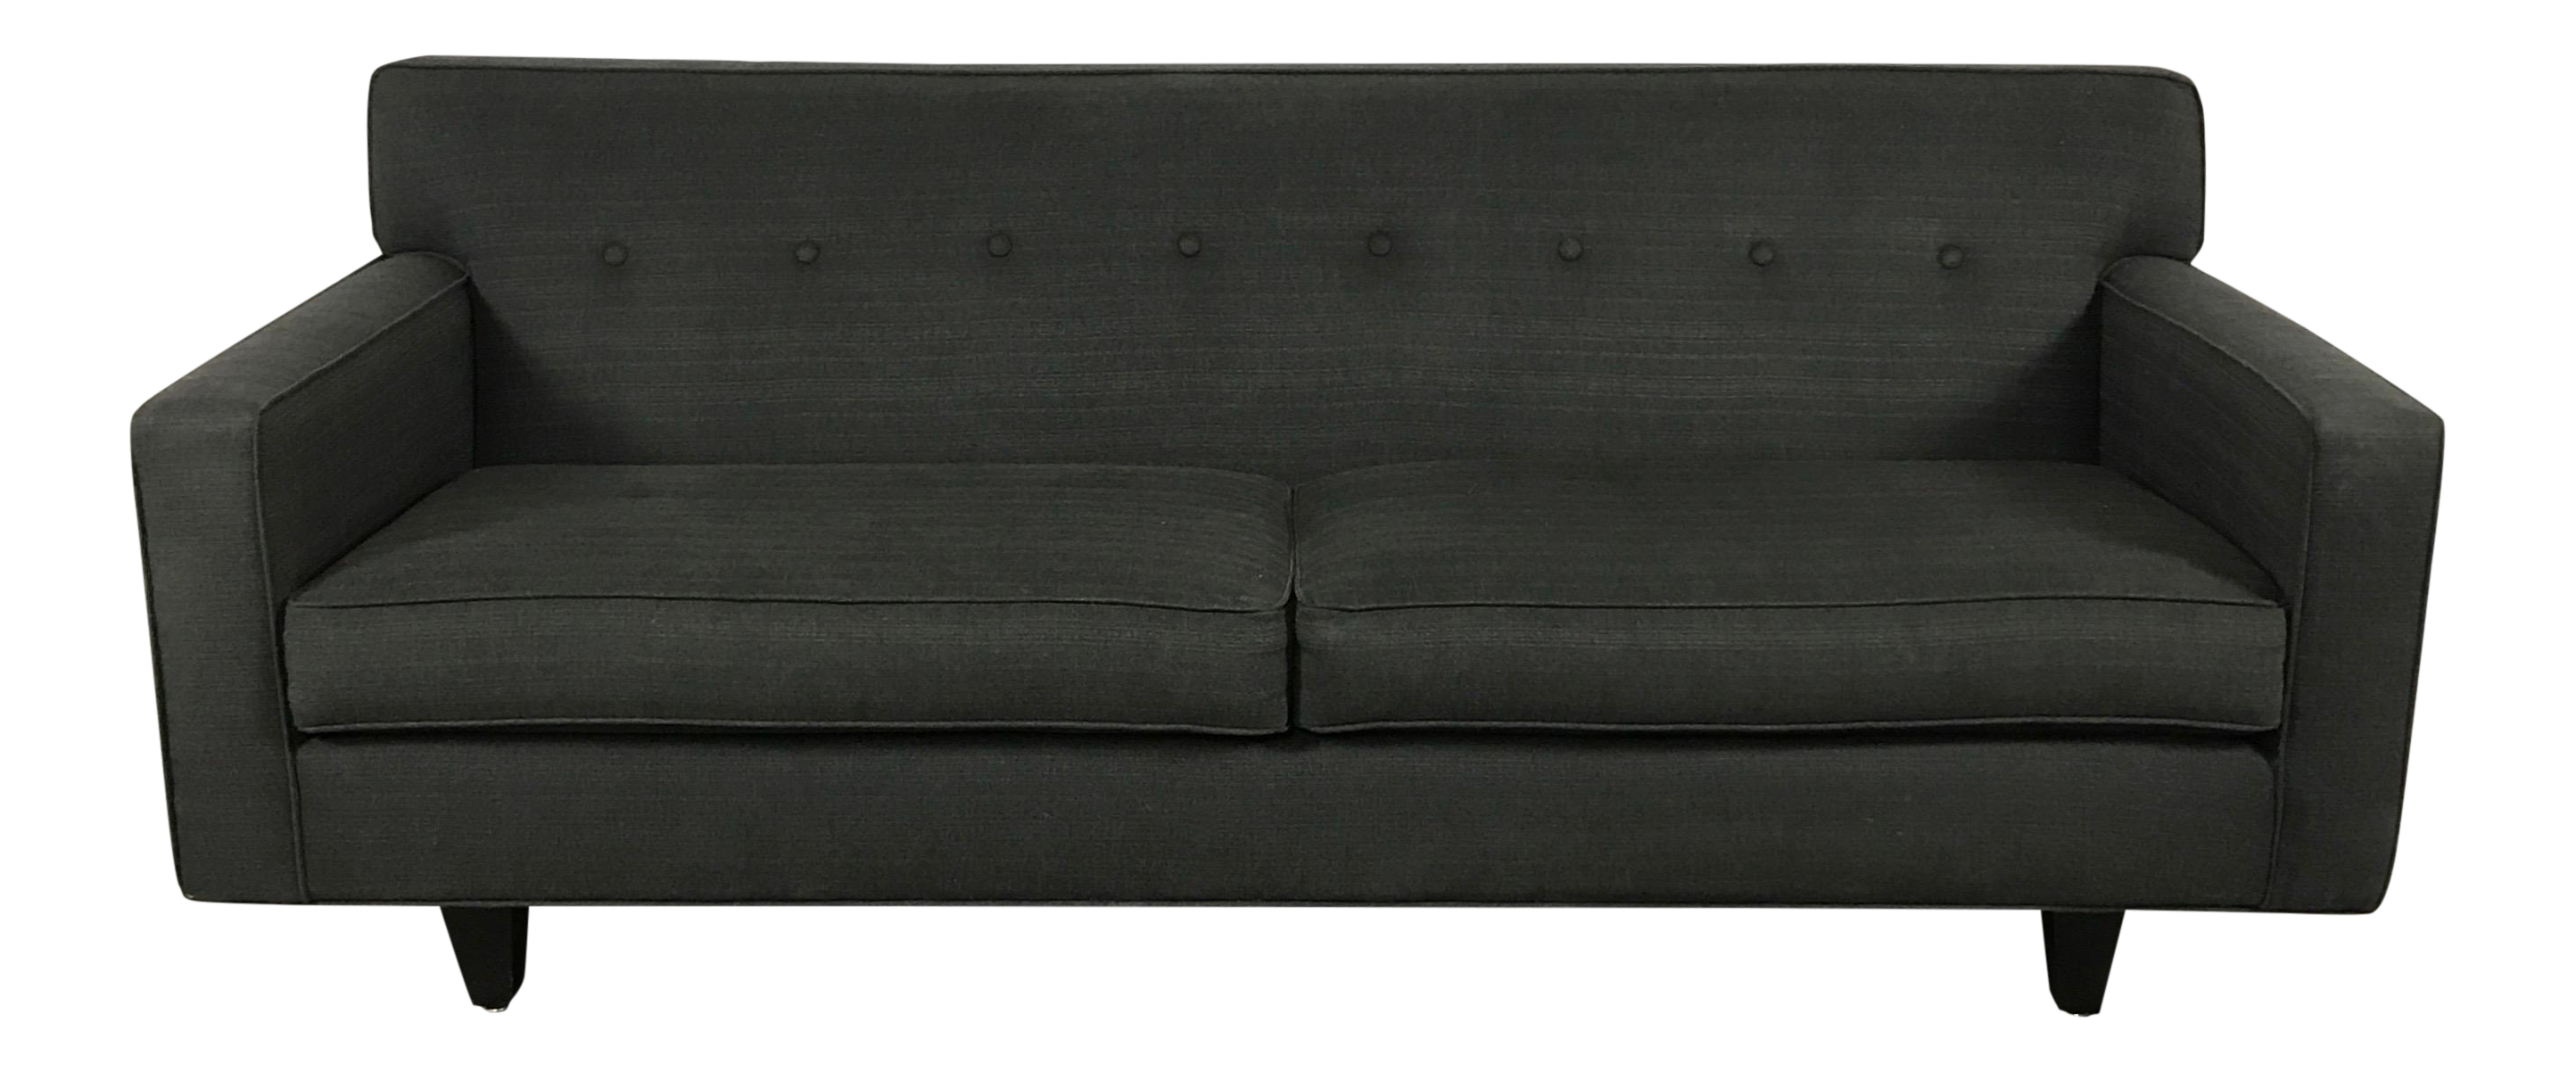 Charcoal Mid Century Modern Tufted Sofa by Rowe Furniture